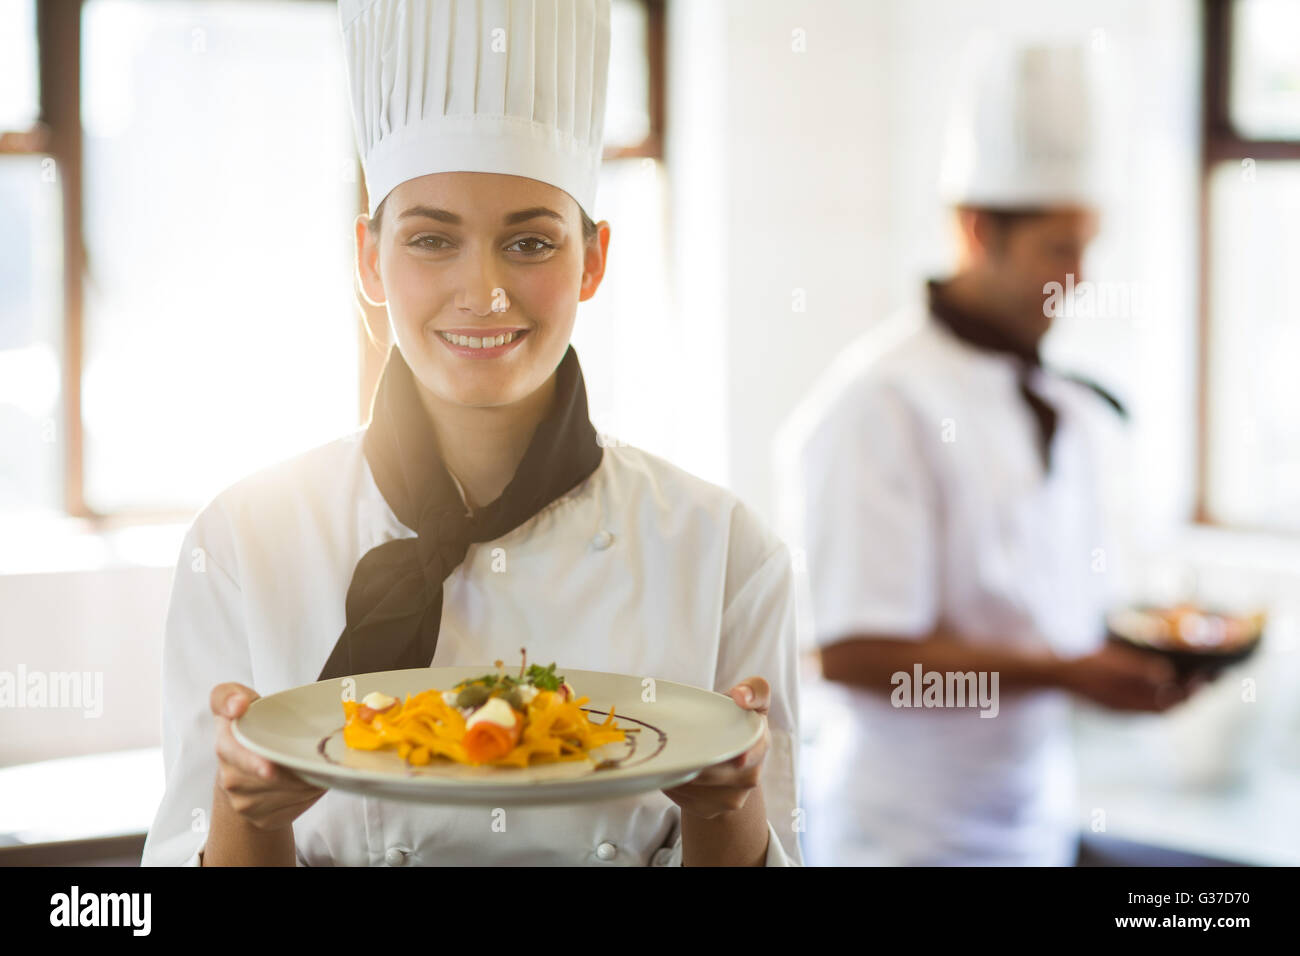 Happy head chef presenting her food - Stock Image